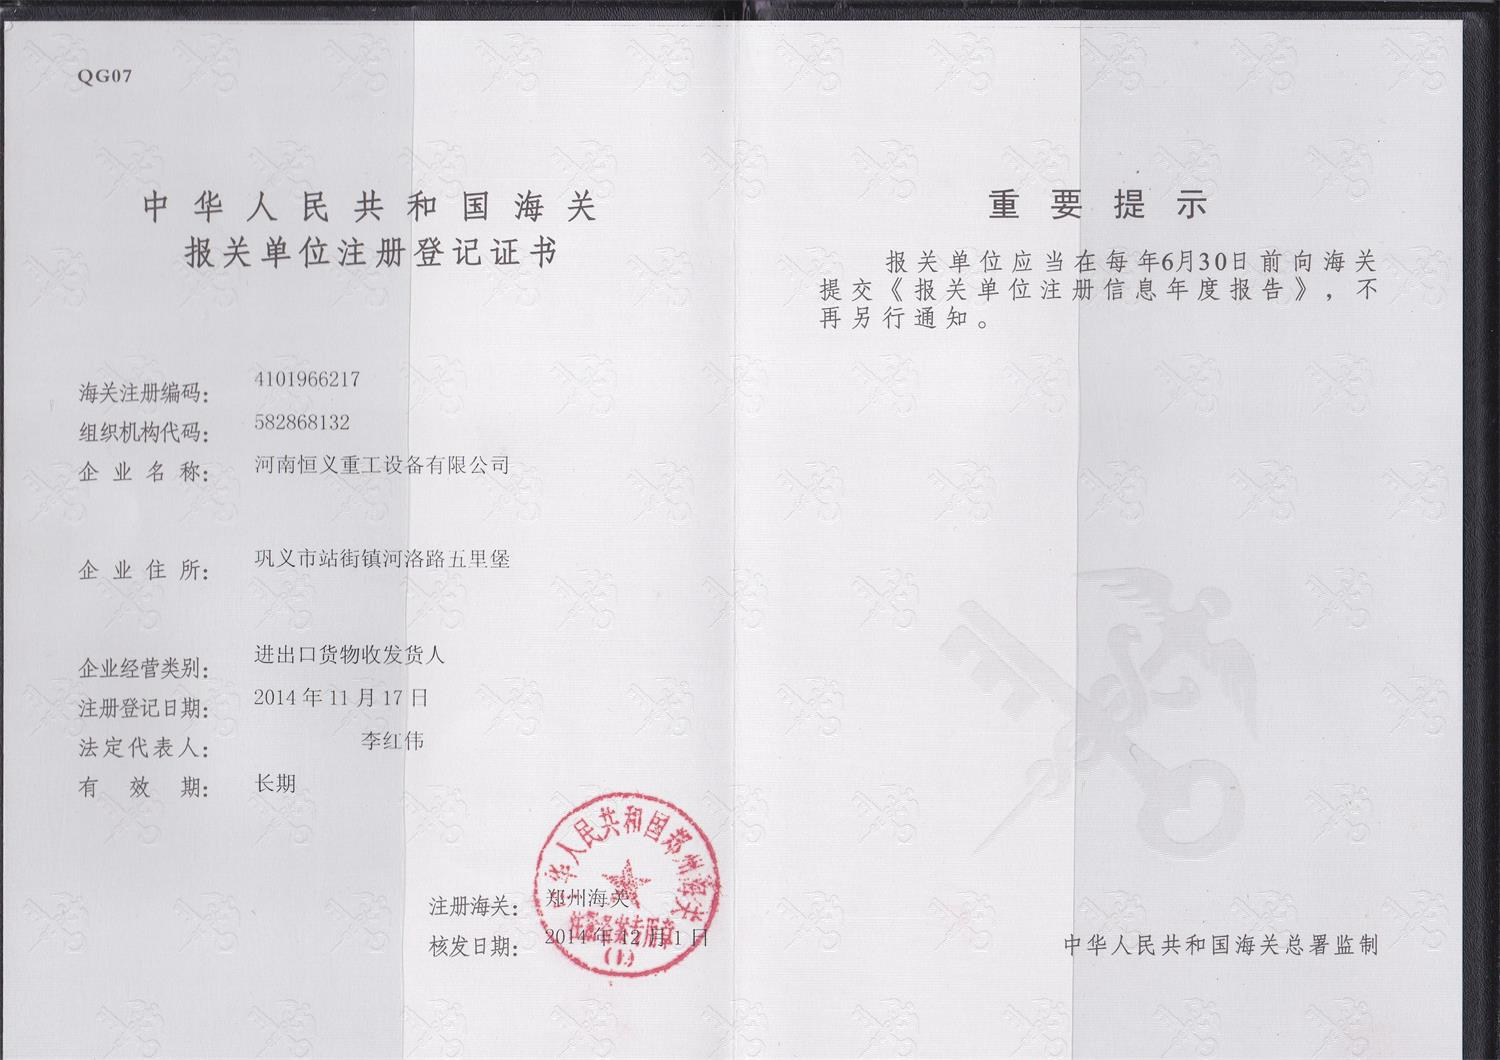 The customs of the People's Republic of China customs declaration registration certificate